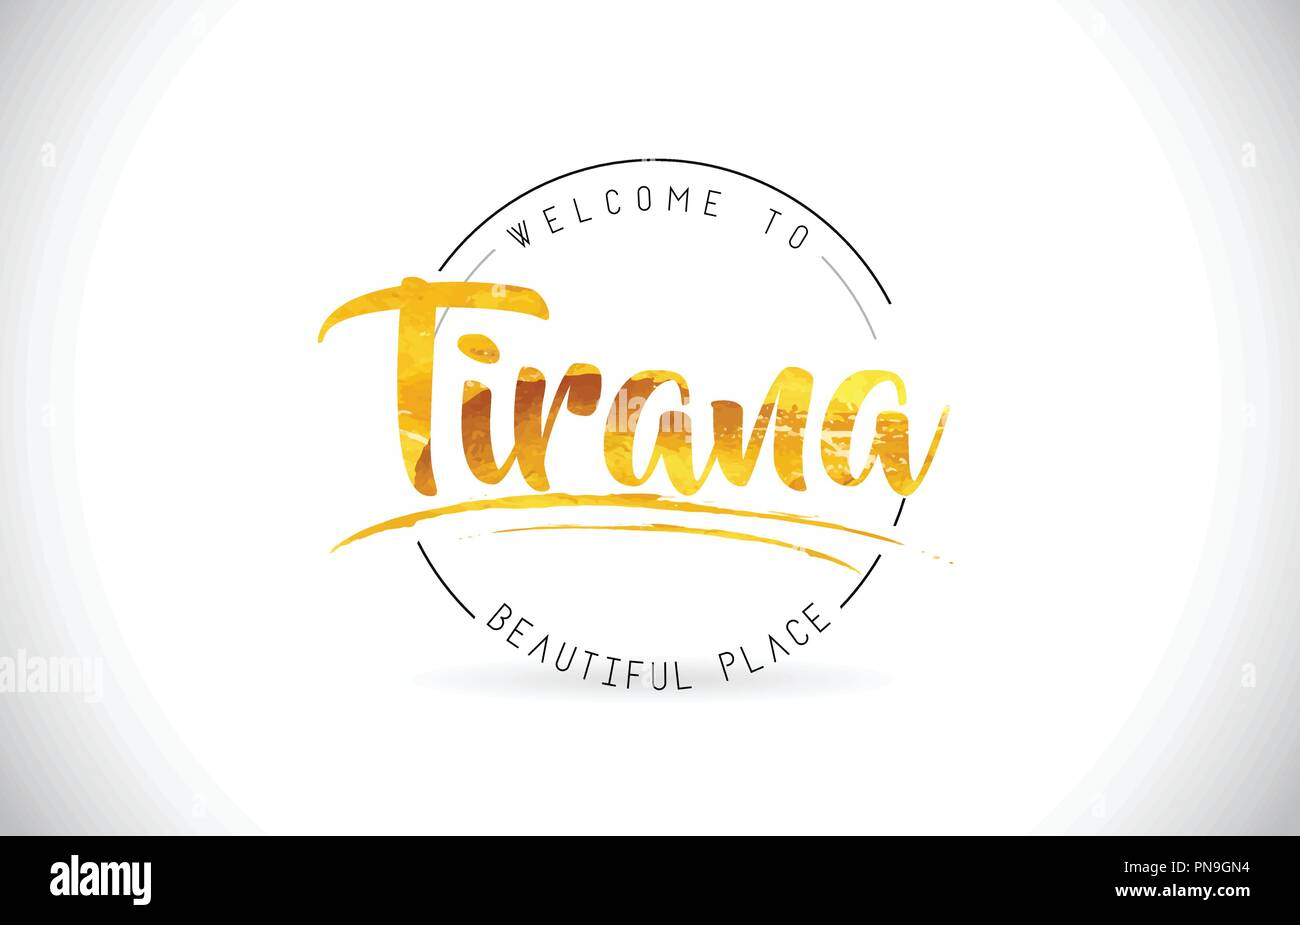 Tirana Welcome To Word Text with Handwritten Font and Golden Texture Design Illustration Vector. - Stock Vector